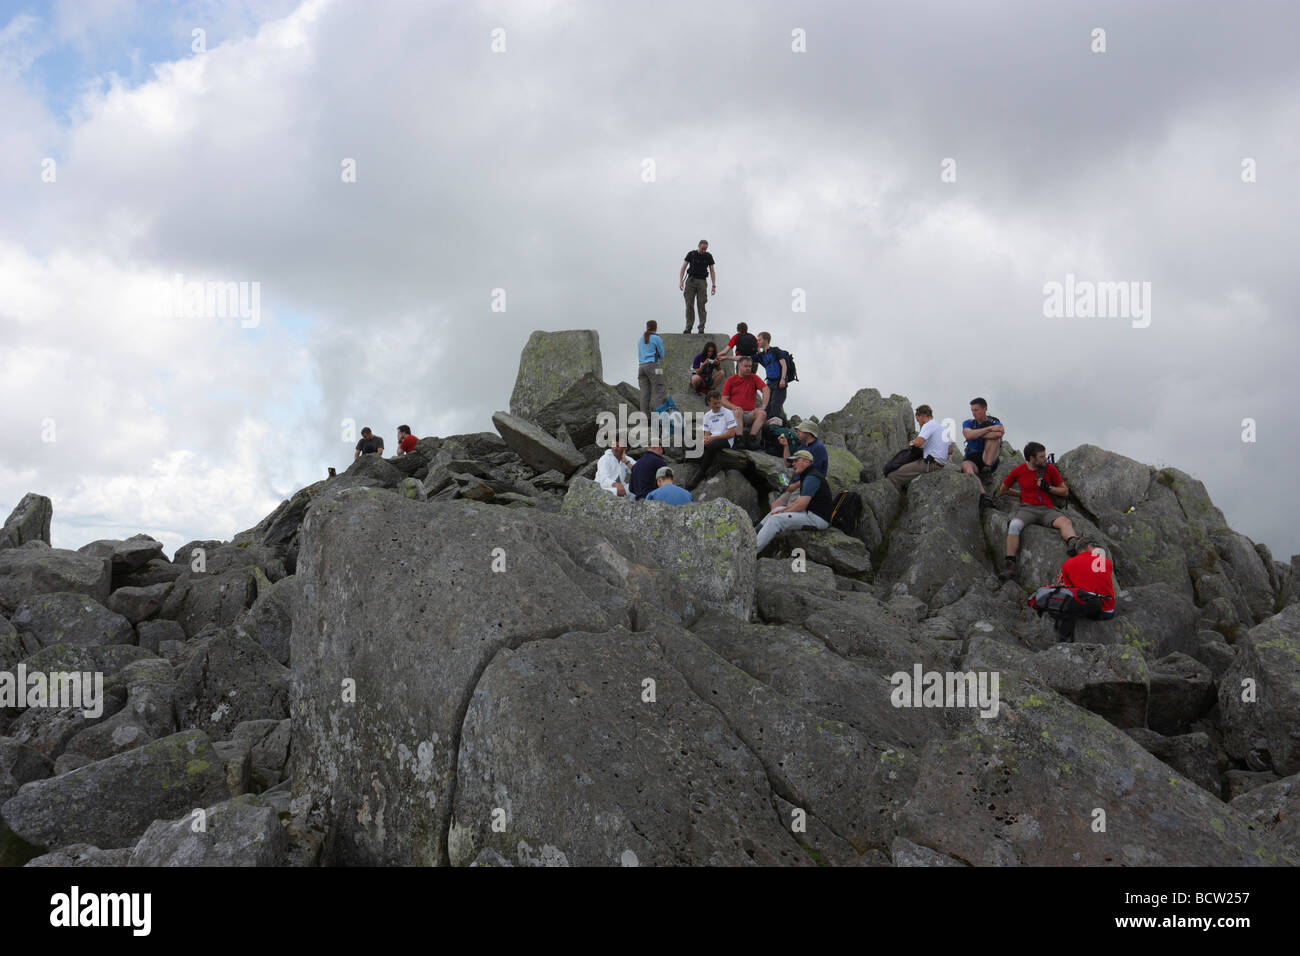 Hill walkers and scramblers on the summit of Tryfan, a peak in Snowdonia, North Wales - Stock Image